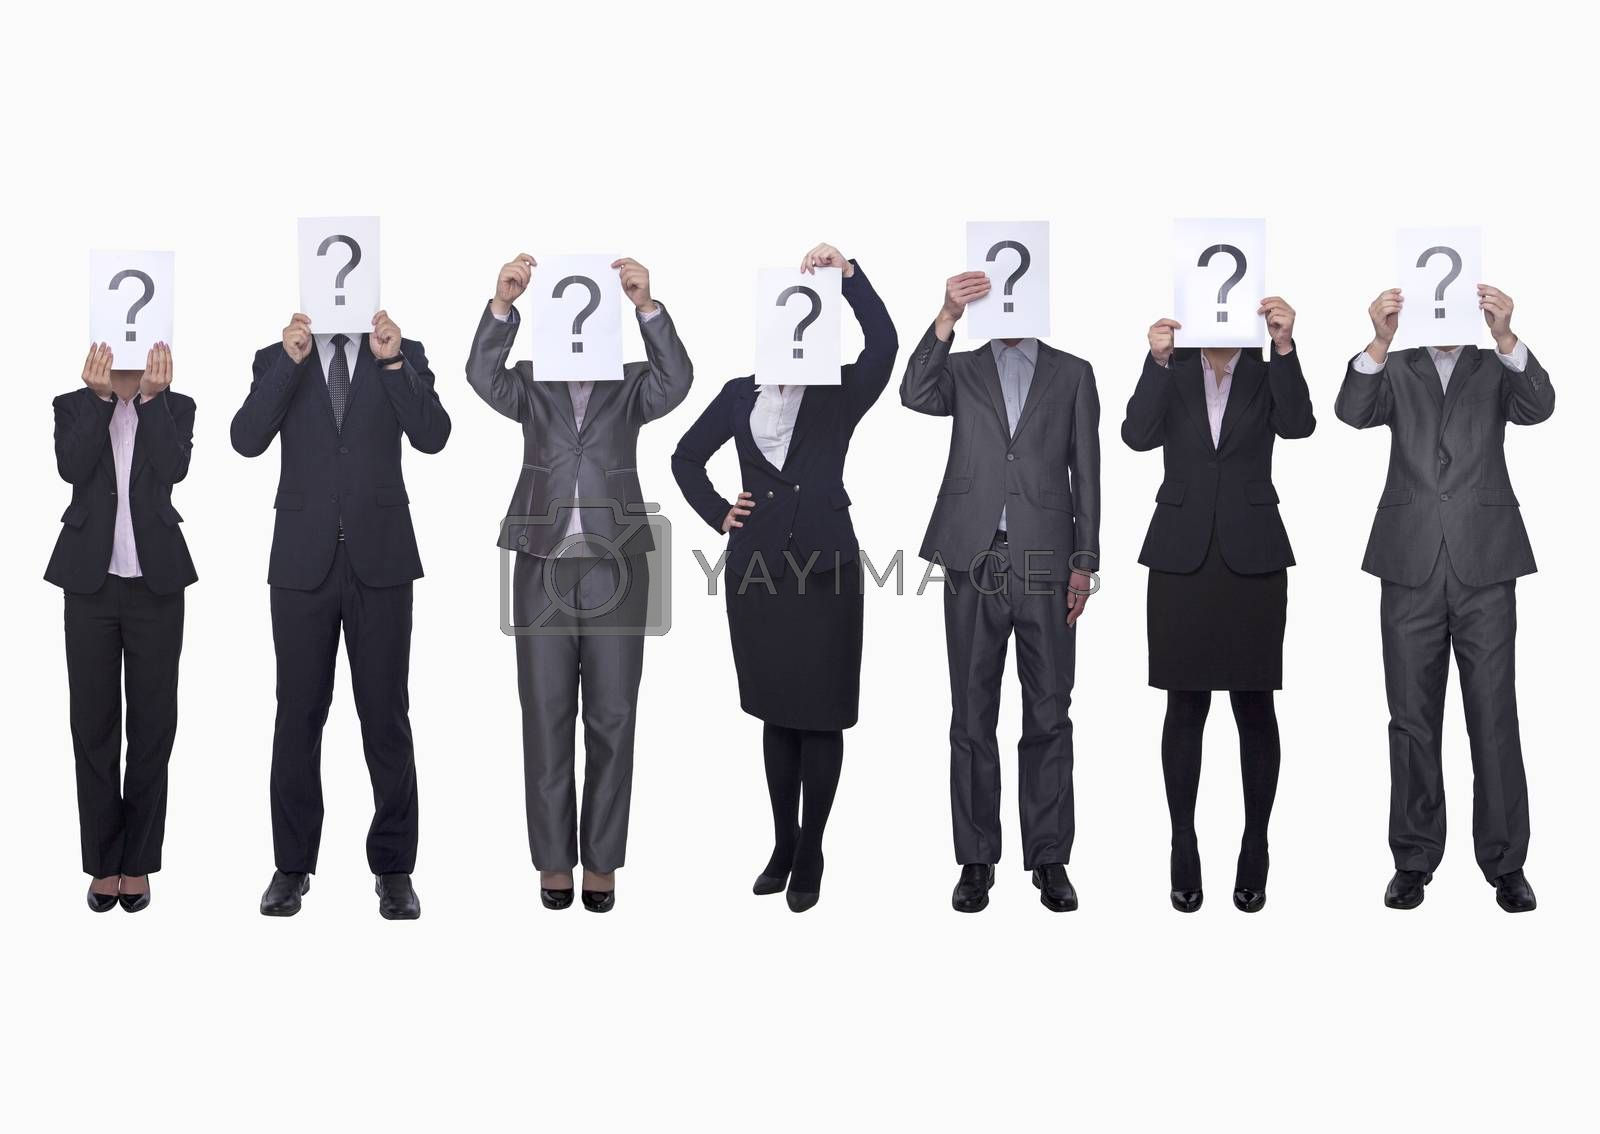 Medium group of business people in a row holding up paper with question mark, obscured face, studio shot by XiXinXing